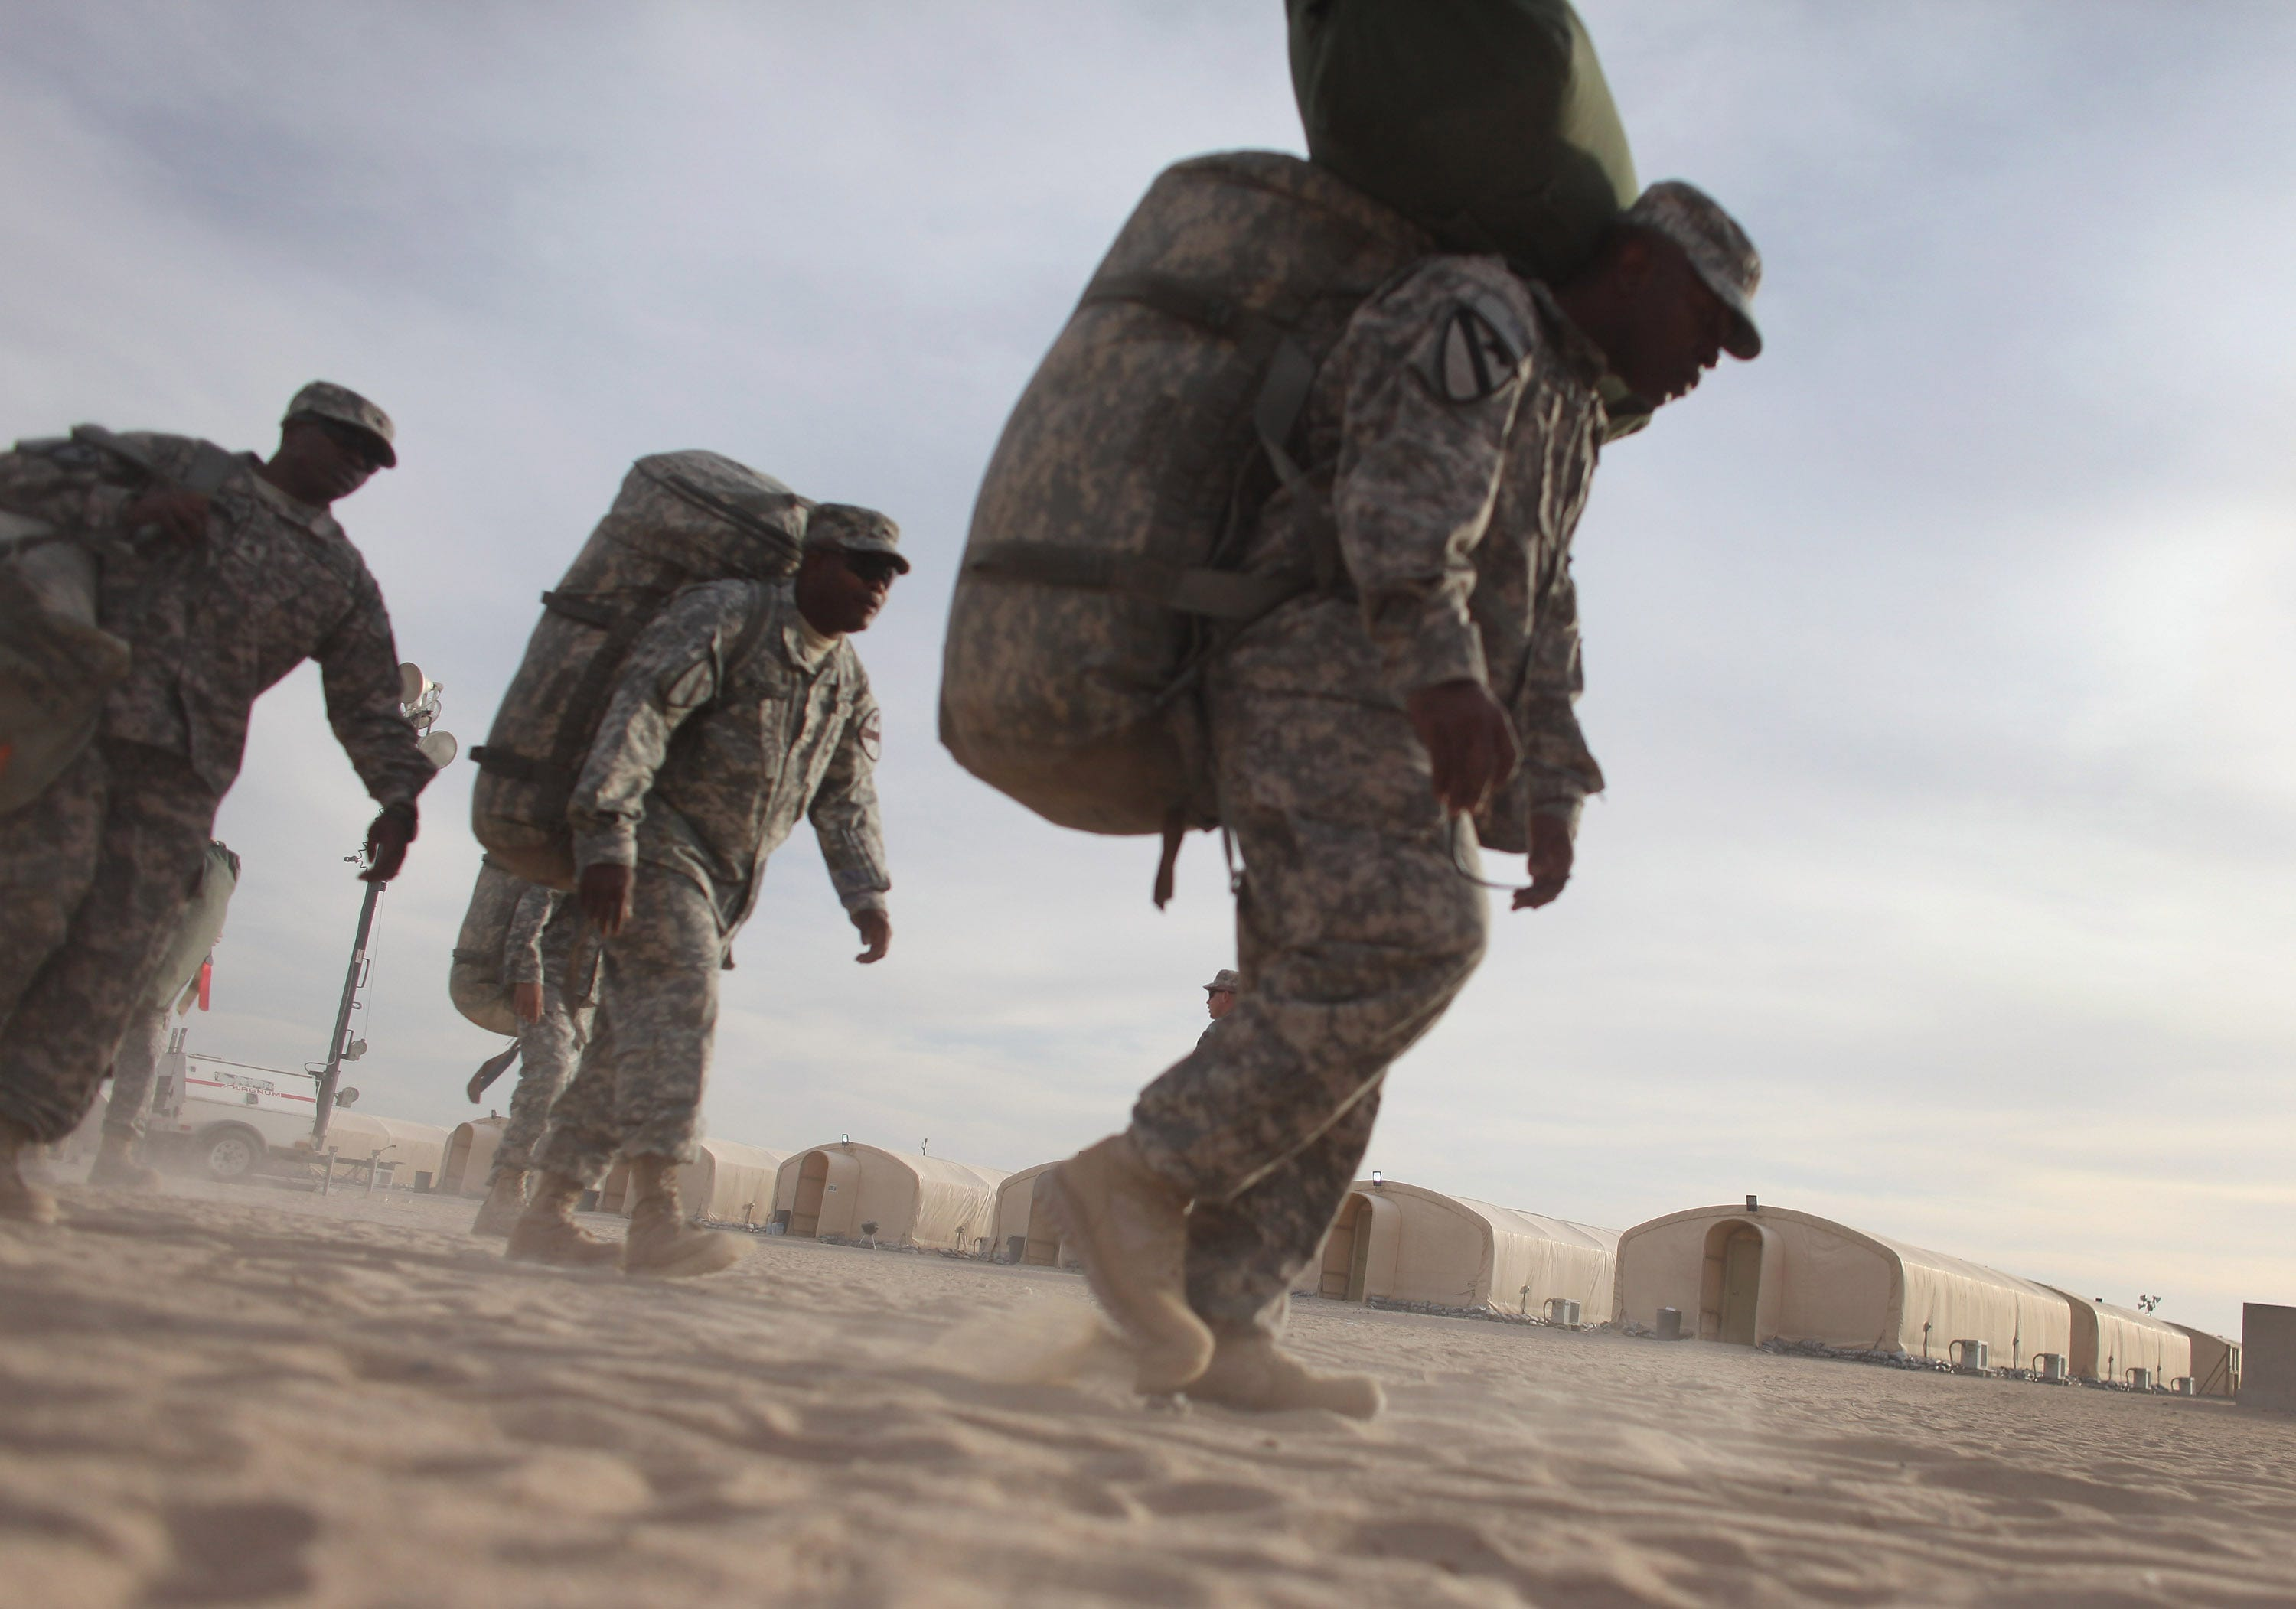 I survived combat in Iraq and a suicide attempt at home. But many veterans aren't so lucky.